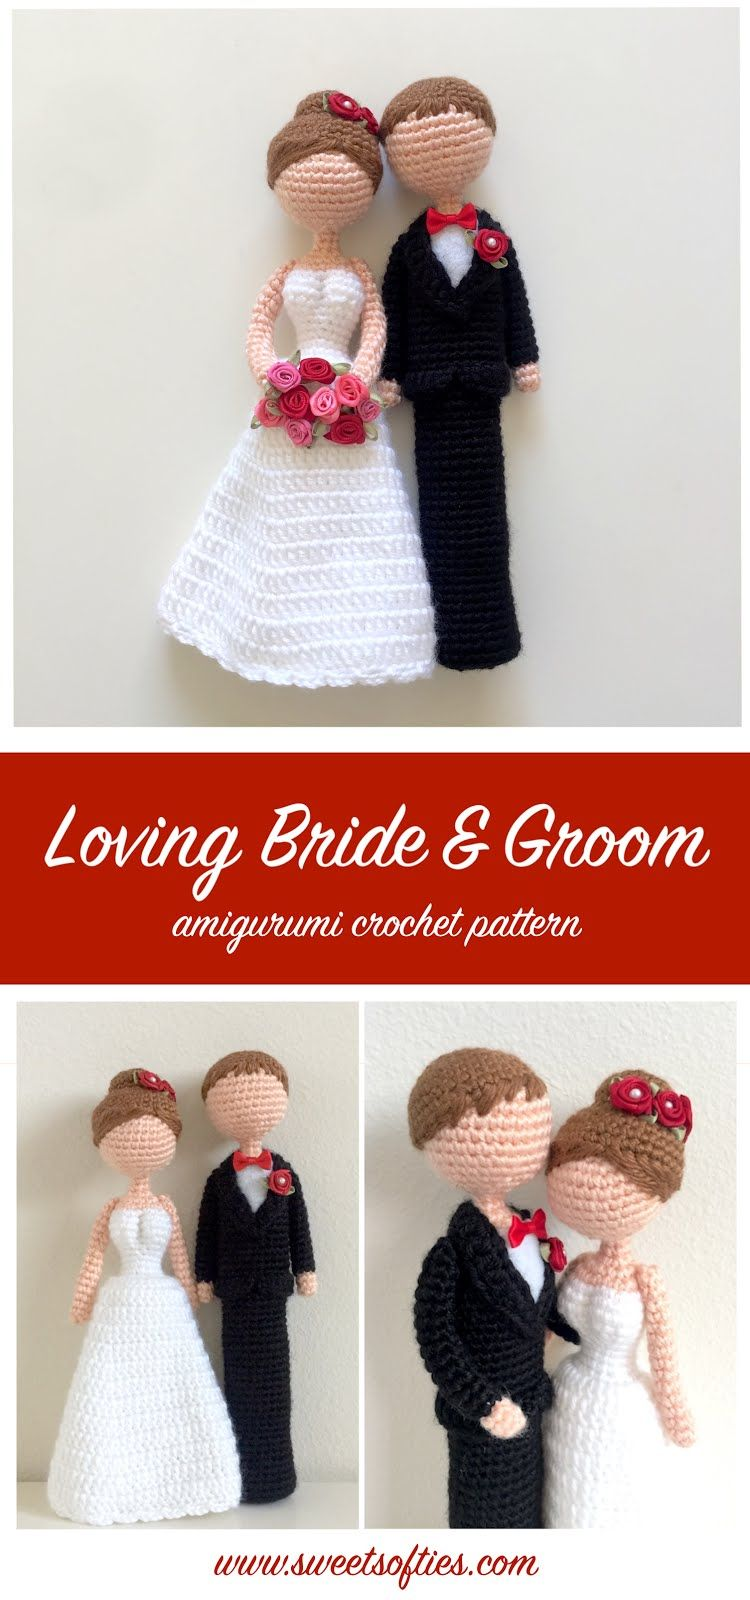 Loving Bride and Groom Wedding Dolls The loving bride and groom amigurumi crochet wedding dolls are perfect as a handmade wedding gift to newlyweds for their marriage! This tall slender couple can easily be customized with their clothing colors and hair colors.